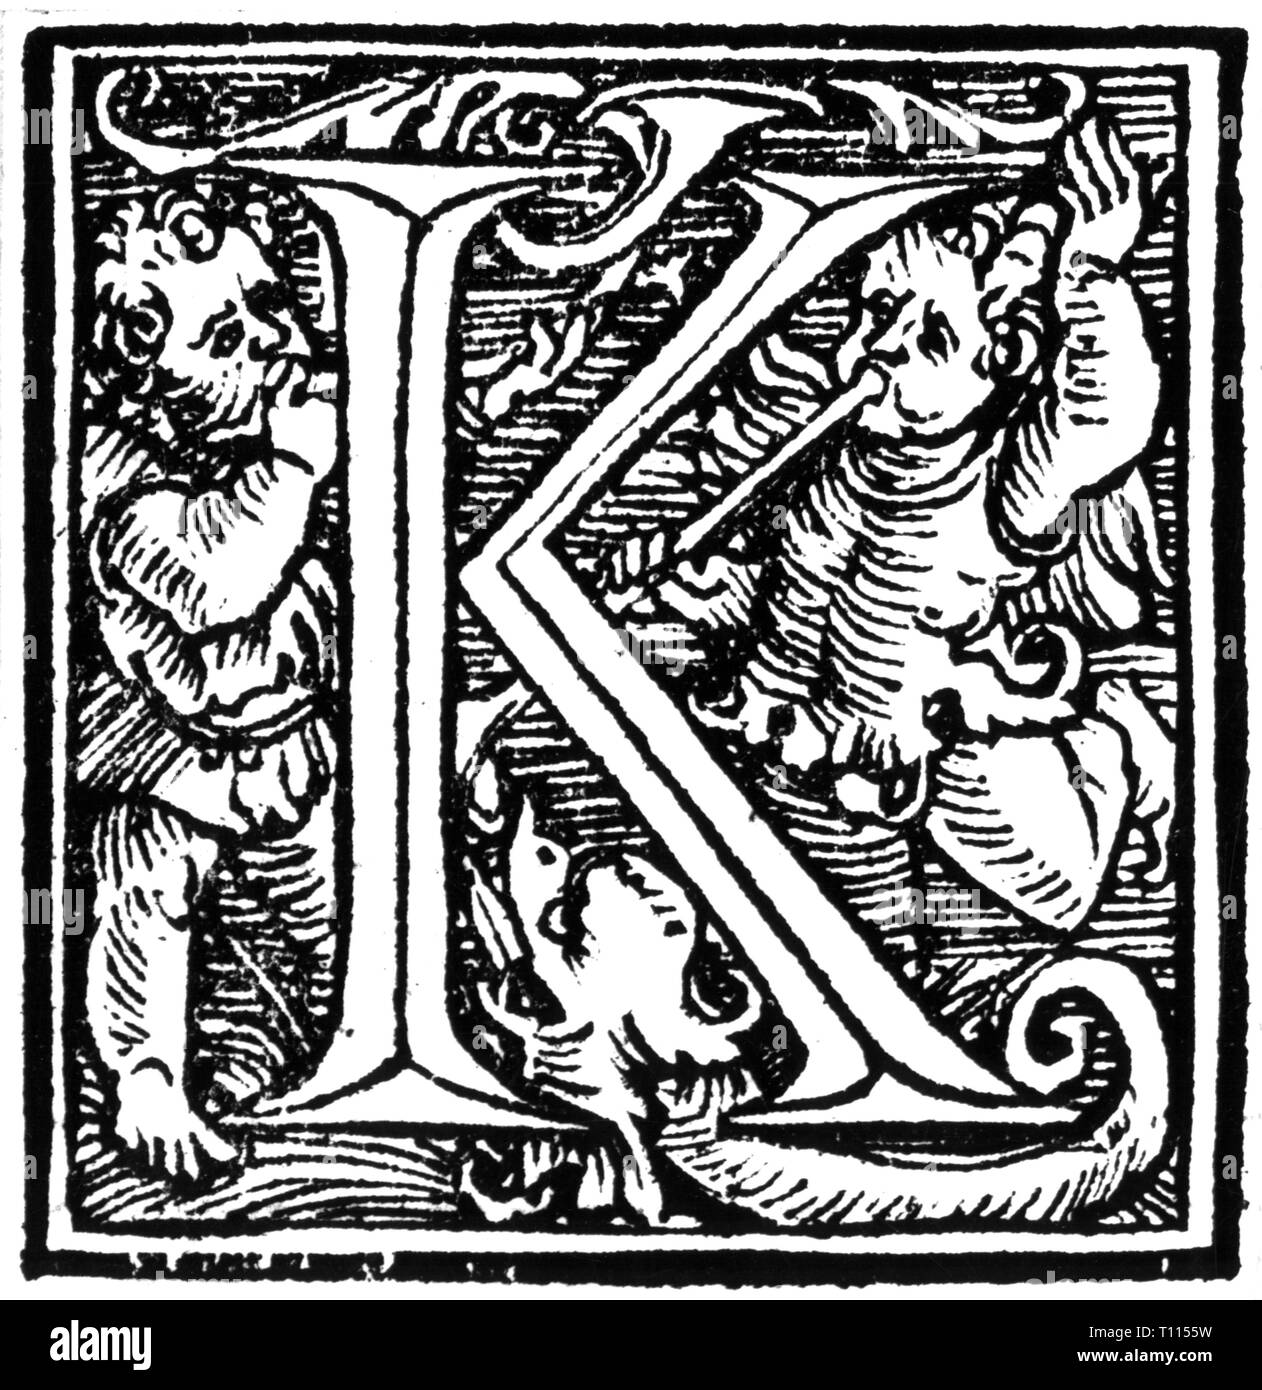 writing, script, Latin, Capitalis Monumentalis, initial 'K', from: 'Liber quindecim Missarum', printed by Johannes Petreius, Nuremberg, 1539, Additional-Rights-Clearance-Info-Not-Available - Stock Image